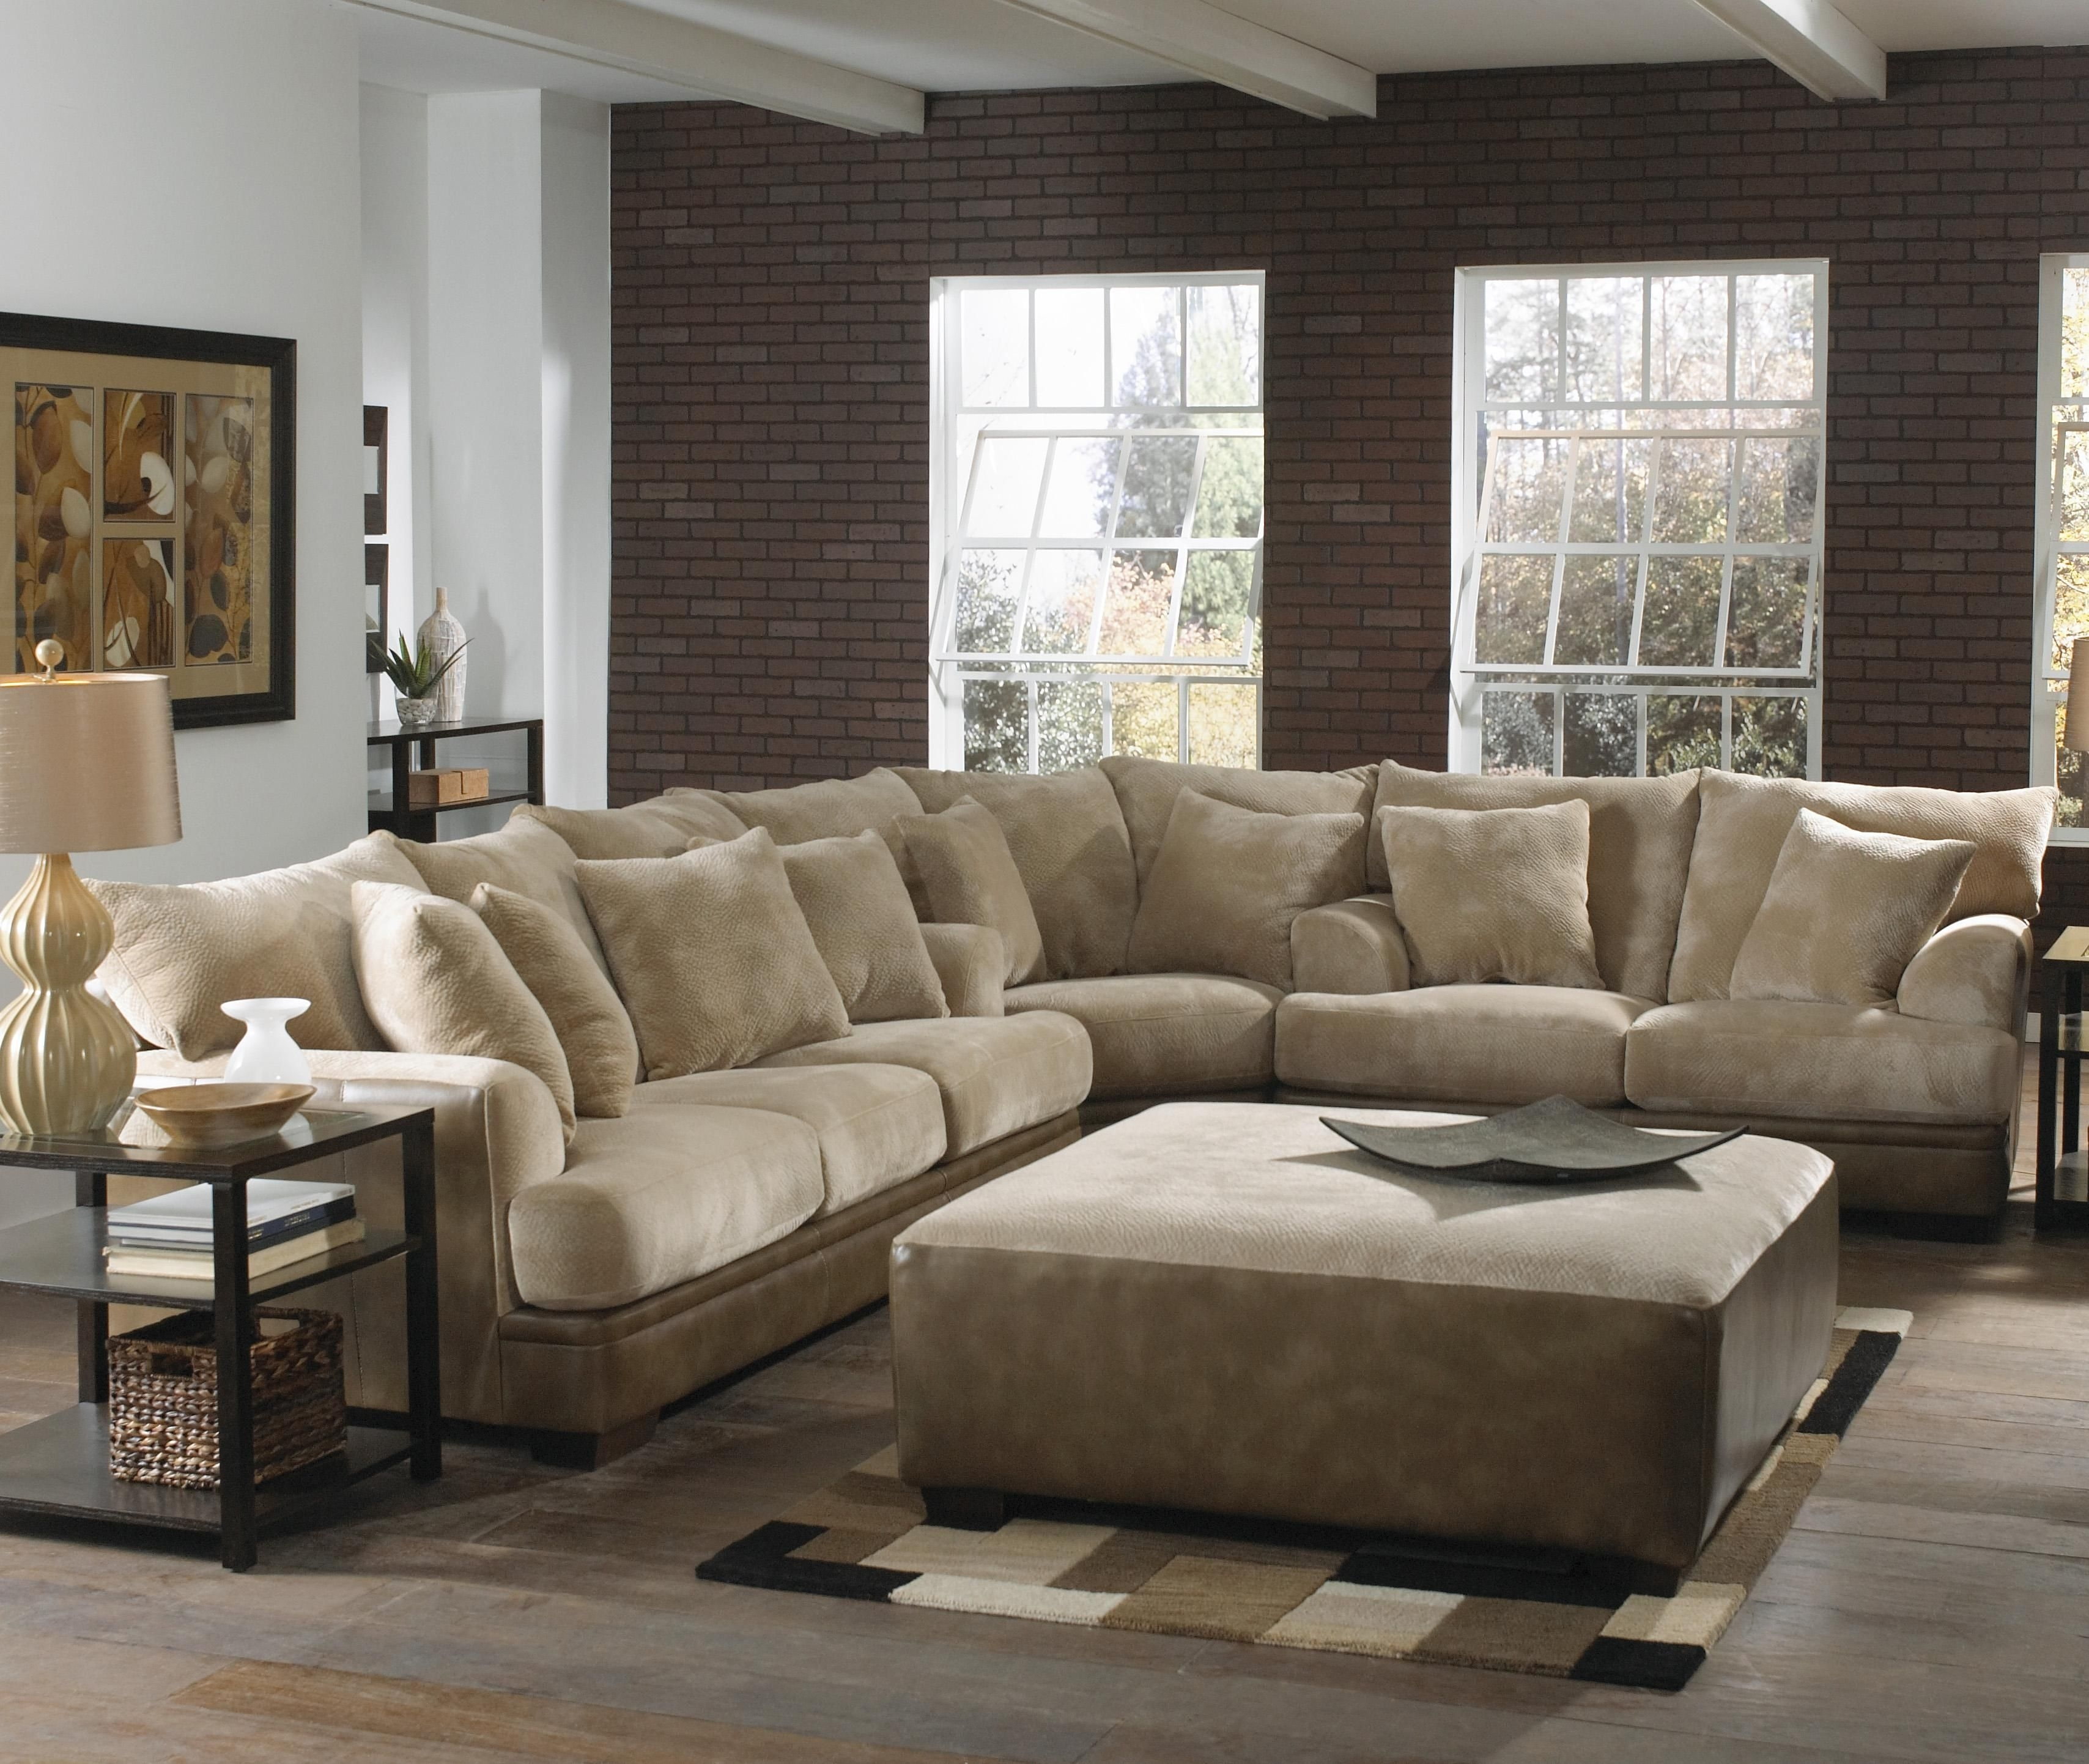 Pinsofascouch On Living Room Sofa | Pinterest | Sofa, Furniture In Norfolk Chocolate 3 Piece Sectionals With Raf Chaise (Image 25 of 33)